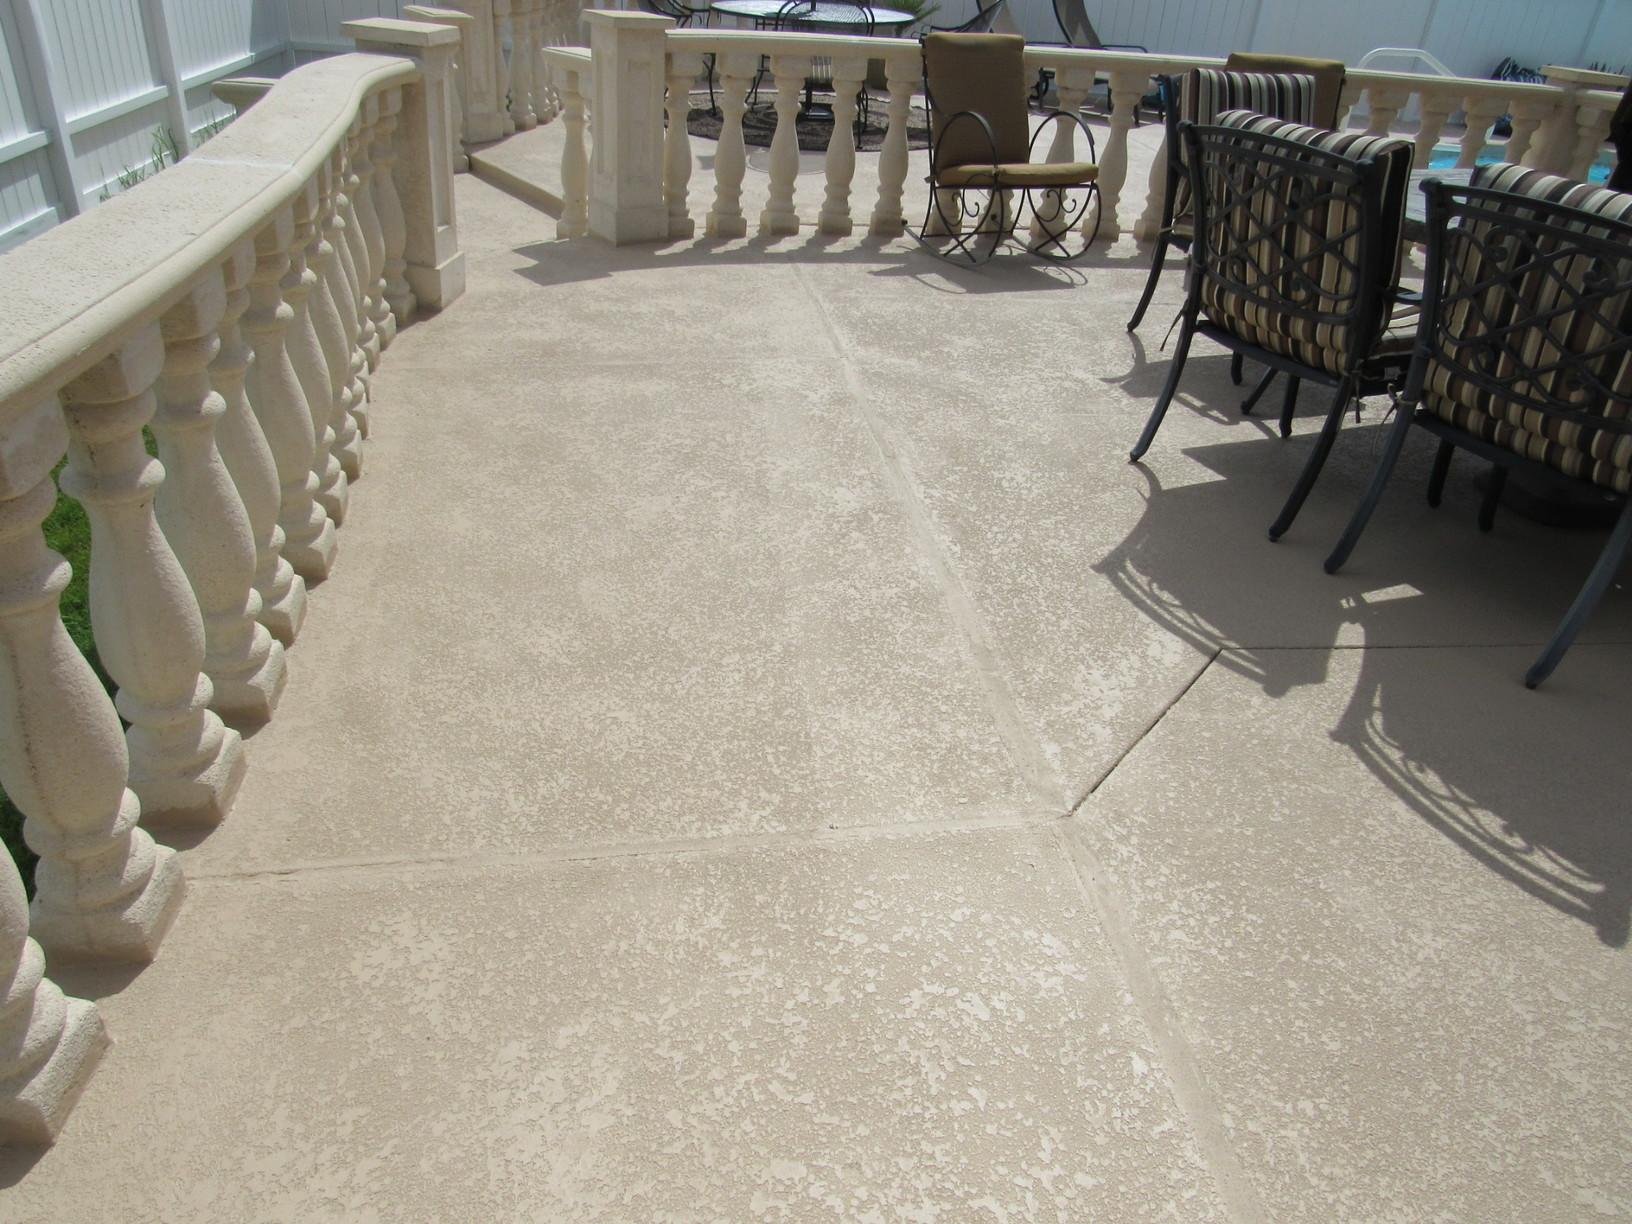 Concrete Leveling in Myrtle Beach, SC - After Photo